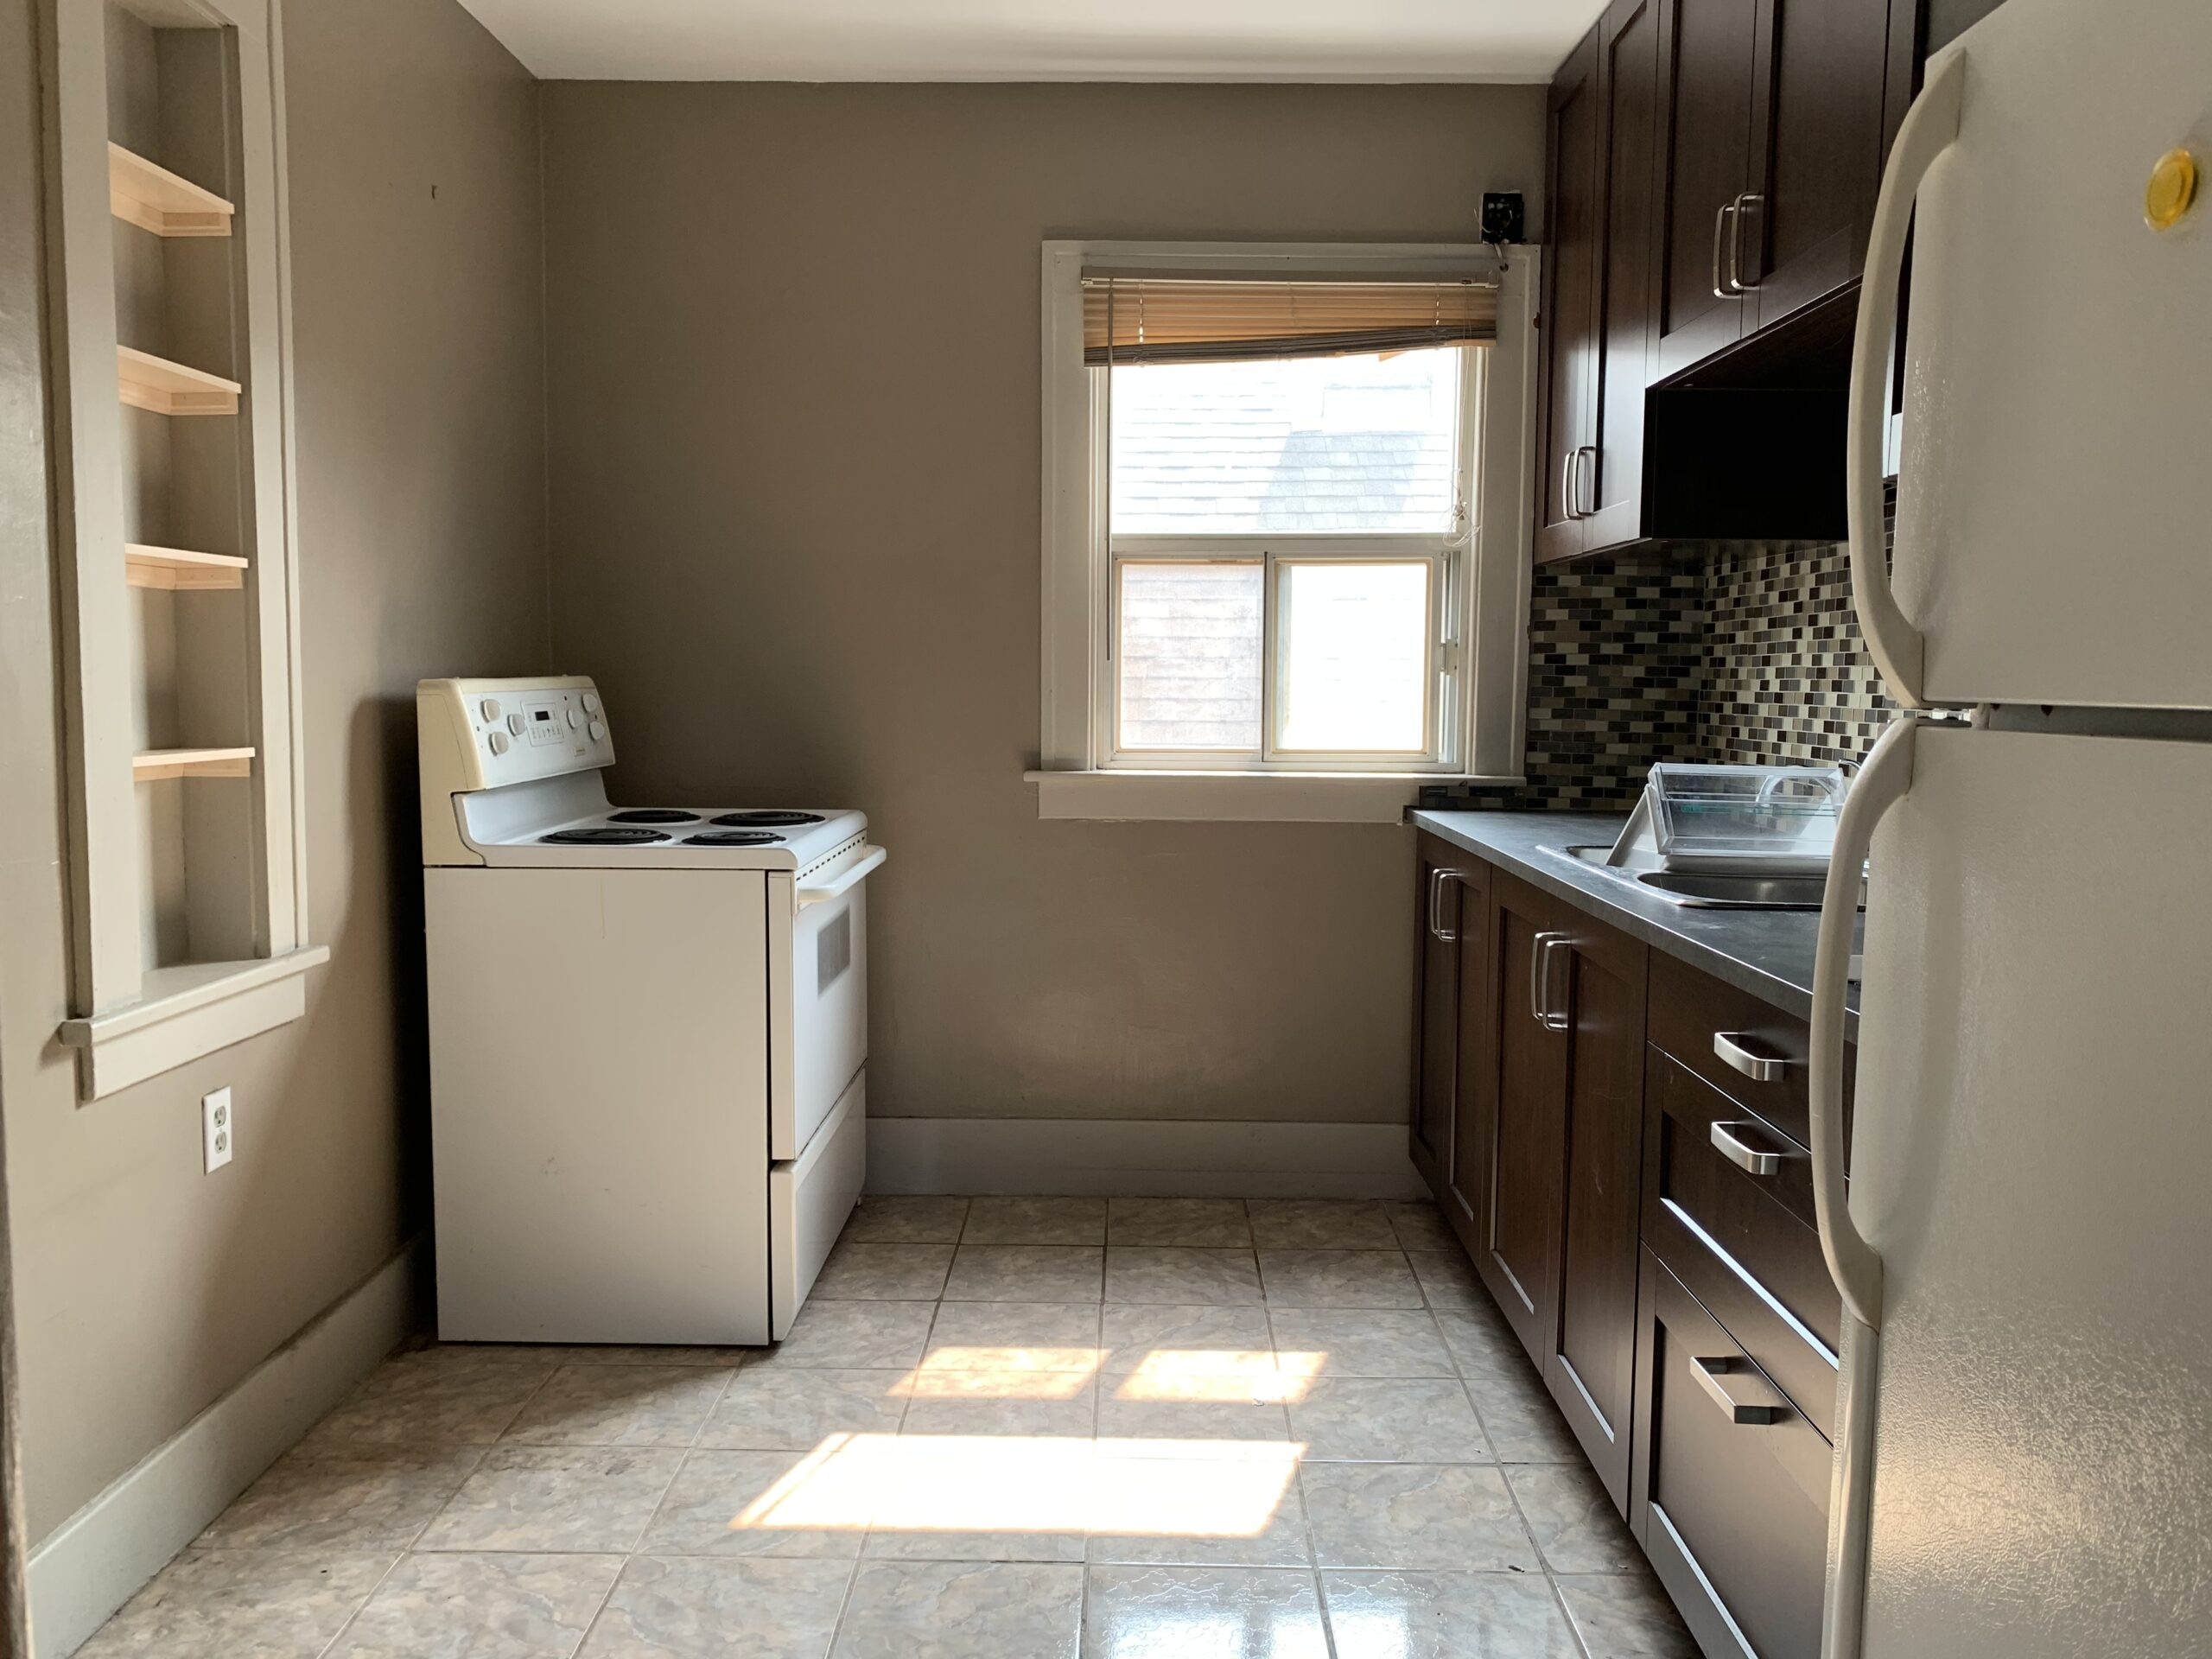 WELL MAINTAINED & SPACIOUS UPPER UNIT IN SOUTH CENTRAL WINDSOR